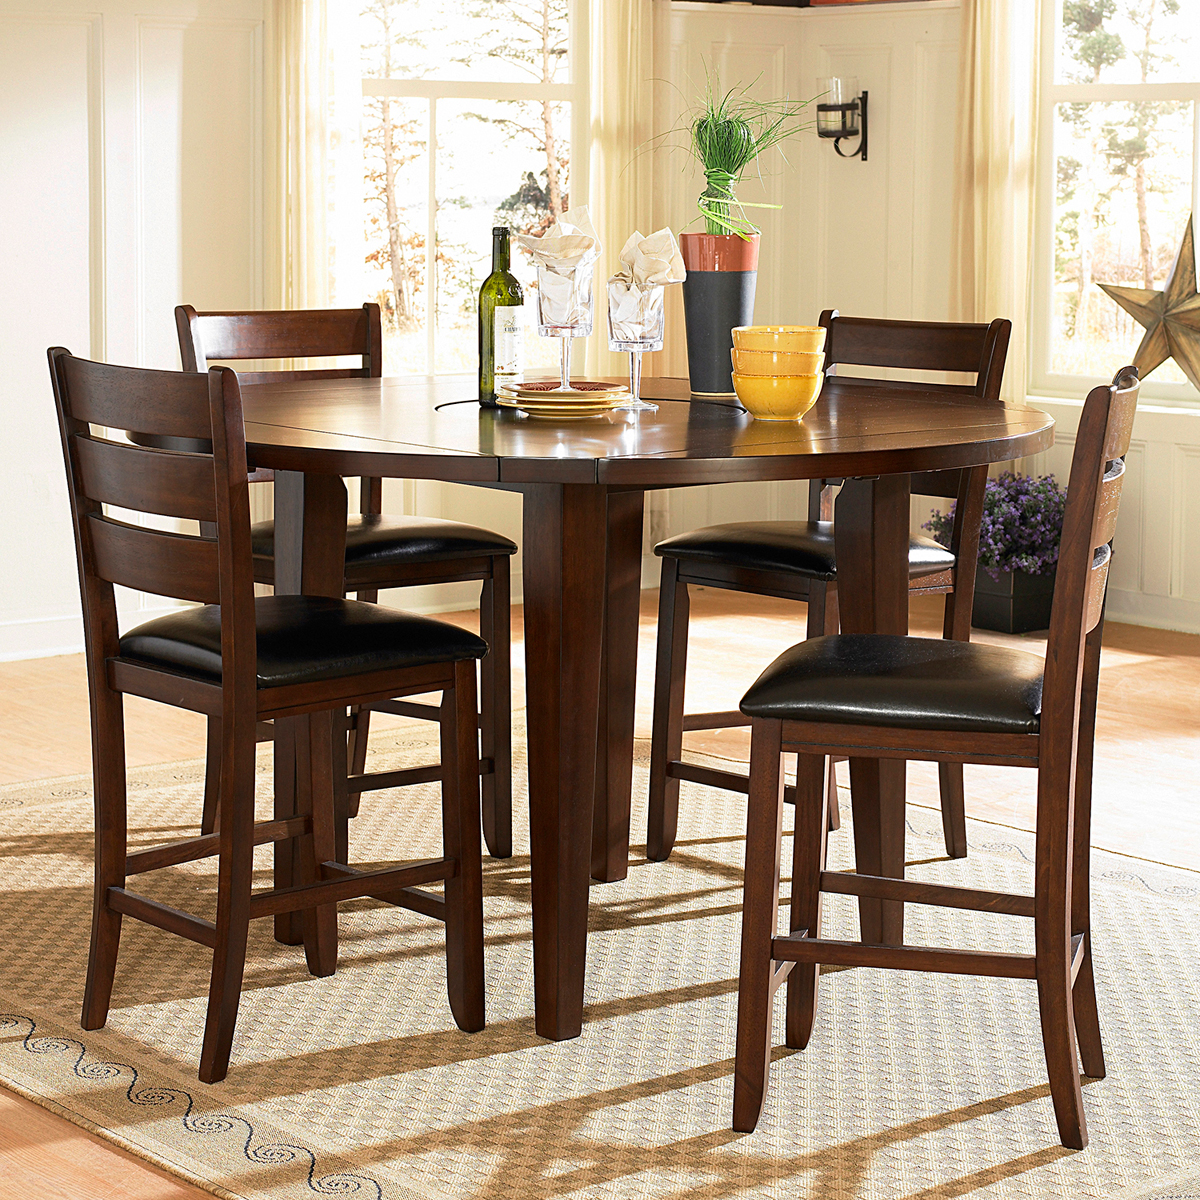 Dining Room Sets Dallas Tx: Homelegance Ameillia Dark Oak 5pc Round Counter Height